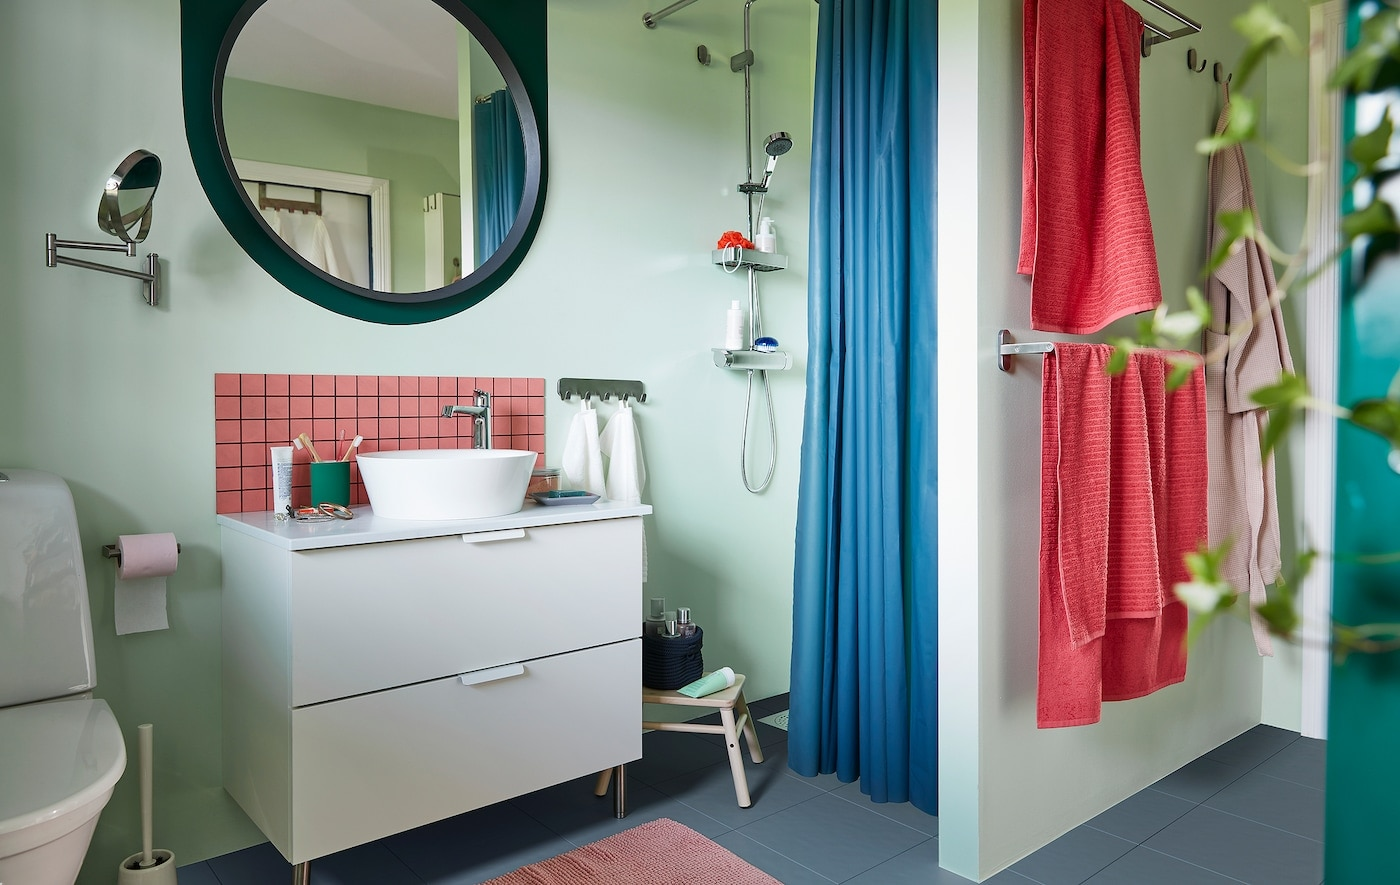 Well organised bathroom interior in soft pastels complete with washstand, shower, towel rail, mirror, plants and accessories.